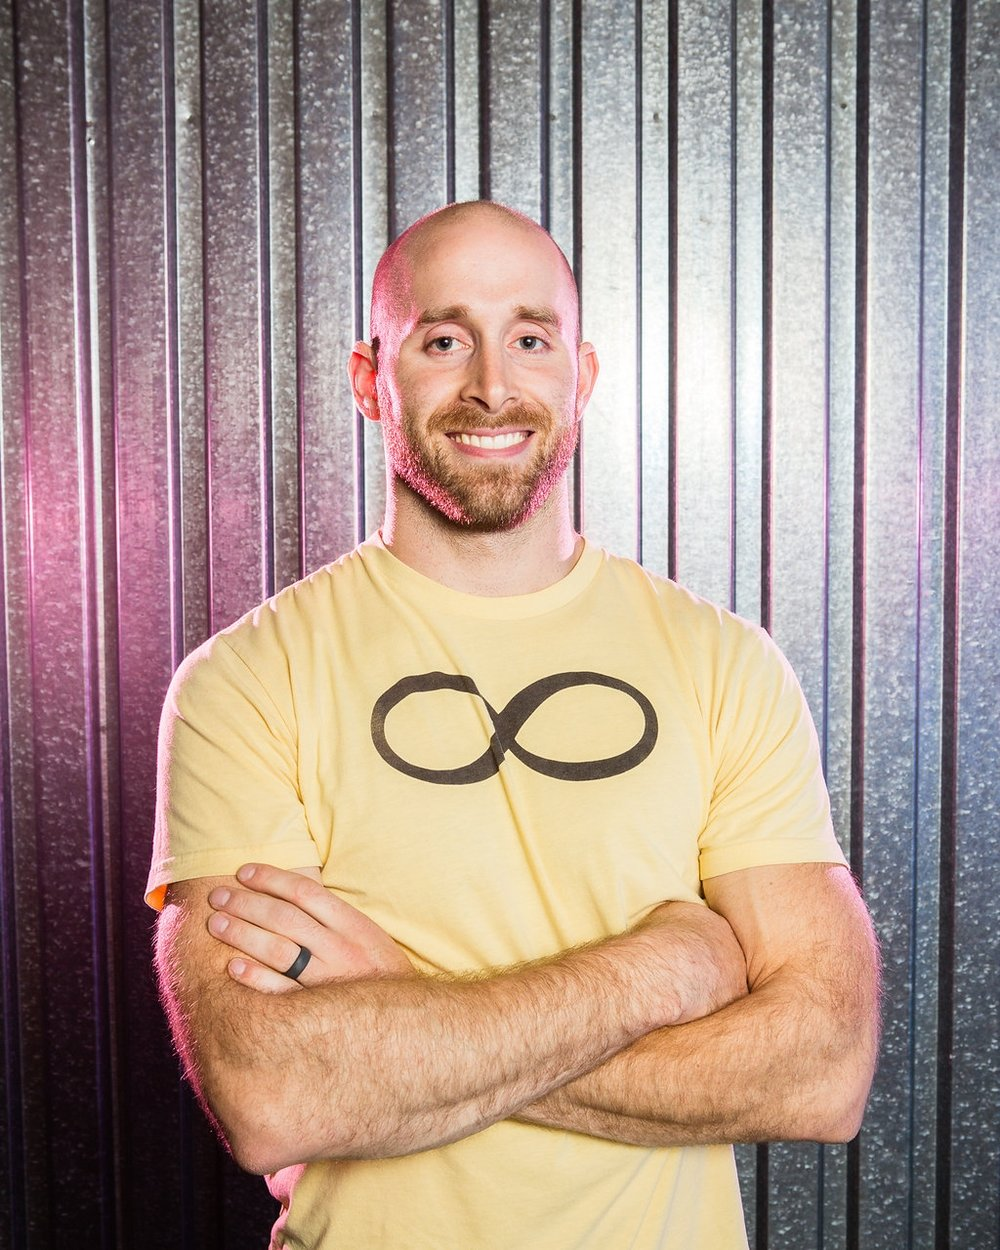 """Chad Southwick - """"I Love CrossFit""""OwnerCrossFit L-2 TrainerViTaFIT Trainer- CrossFit Gymnastics- CrossFit Mobility Course- Olympic Weightlifting"""